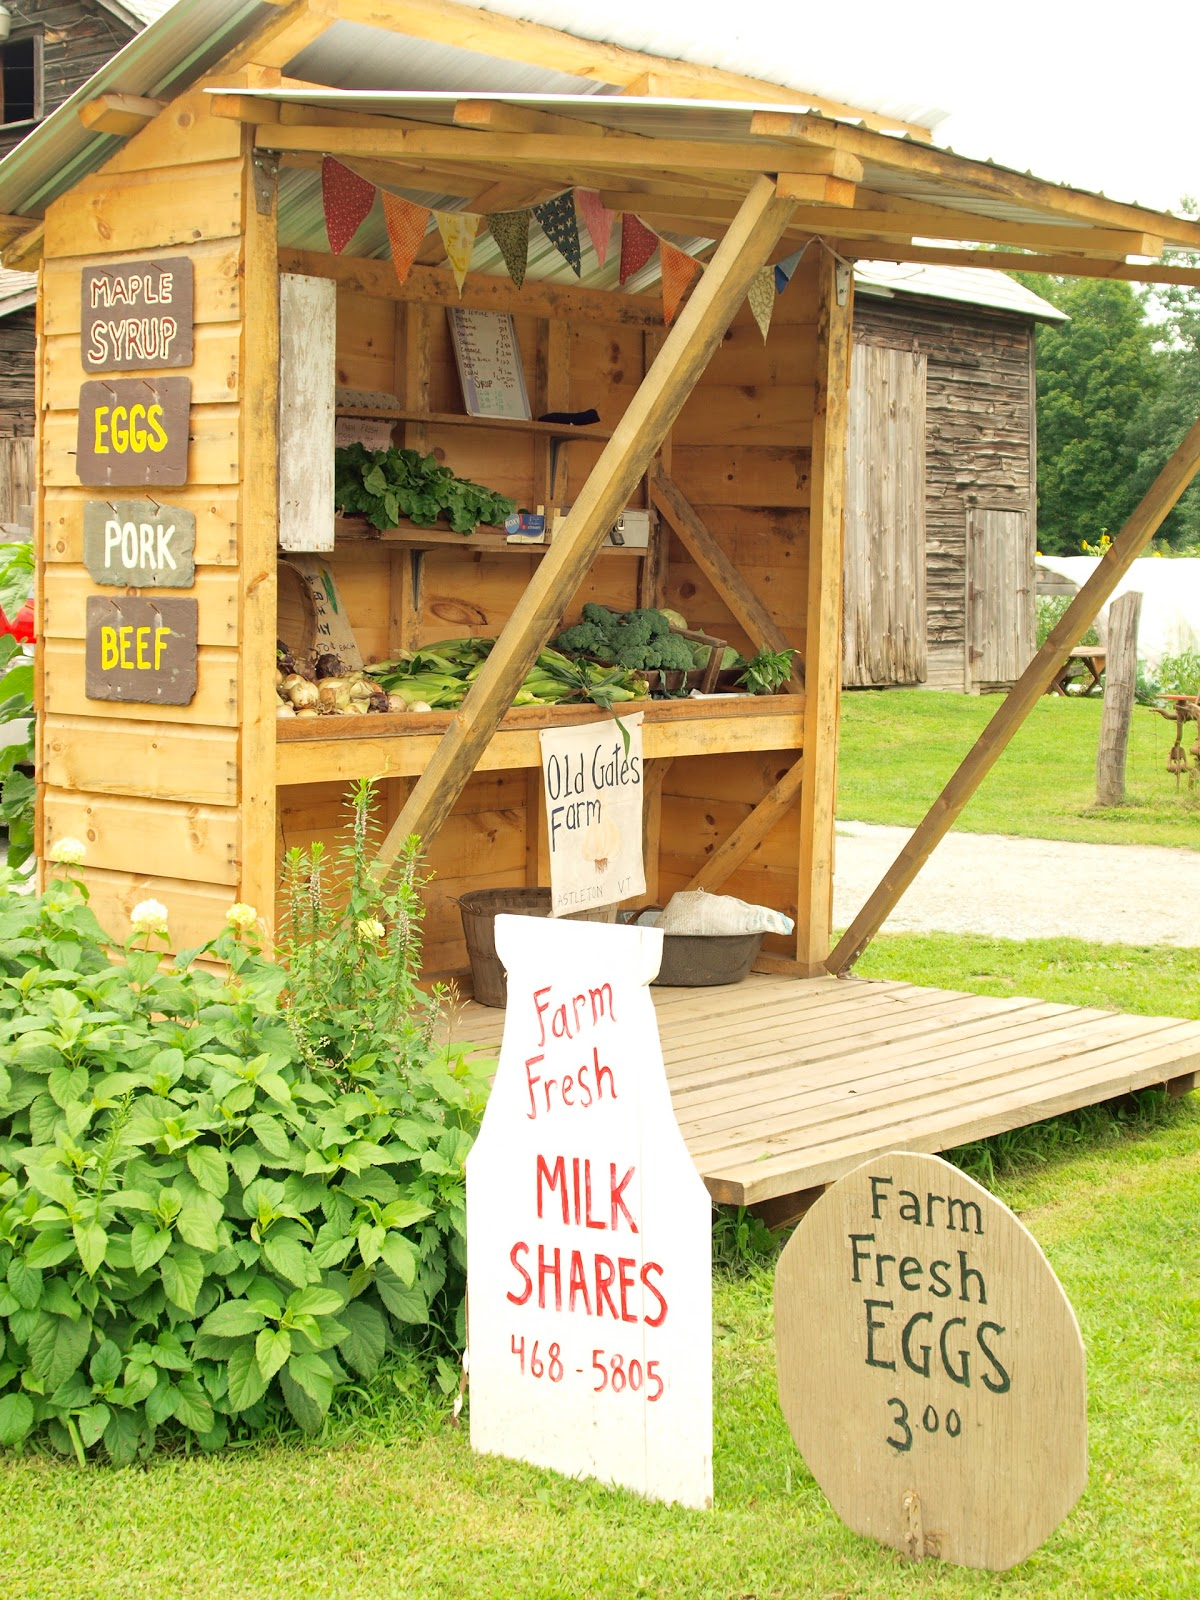 Roadside Stand Designs : Small farm stand bees pinterest